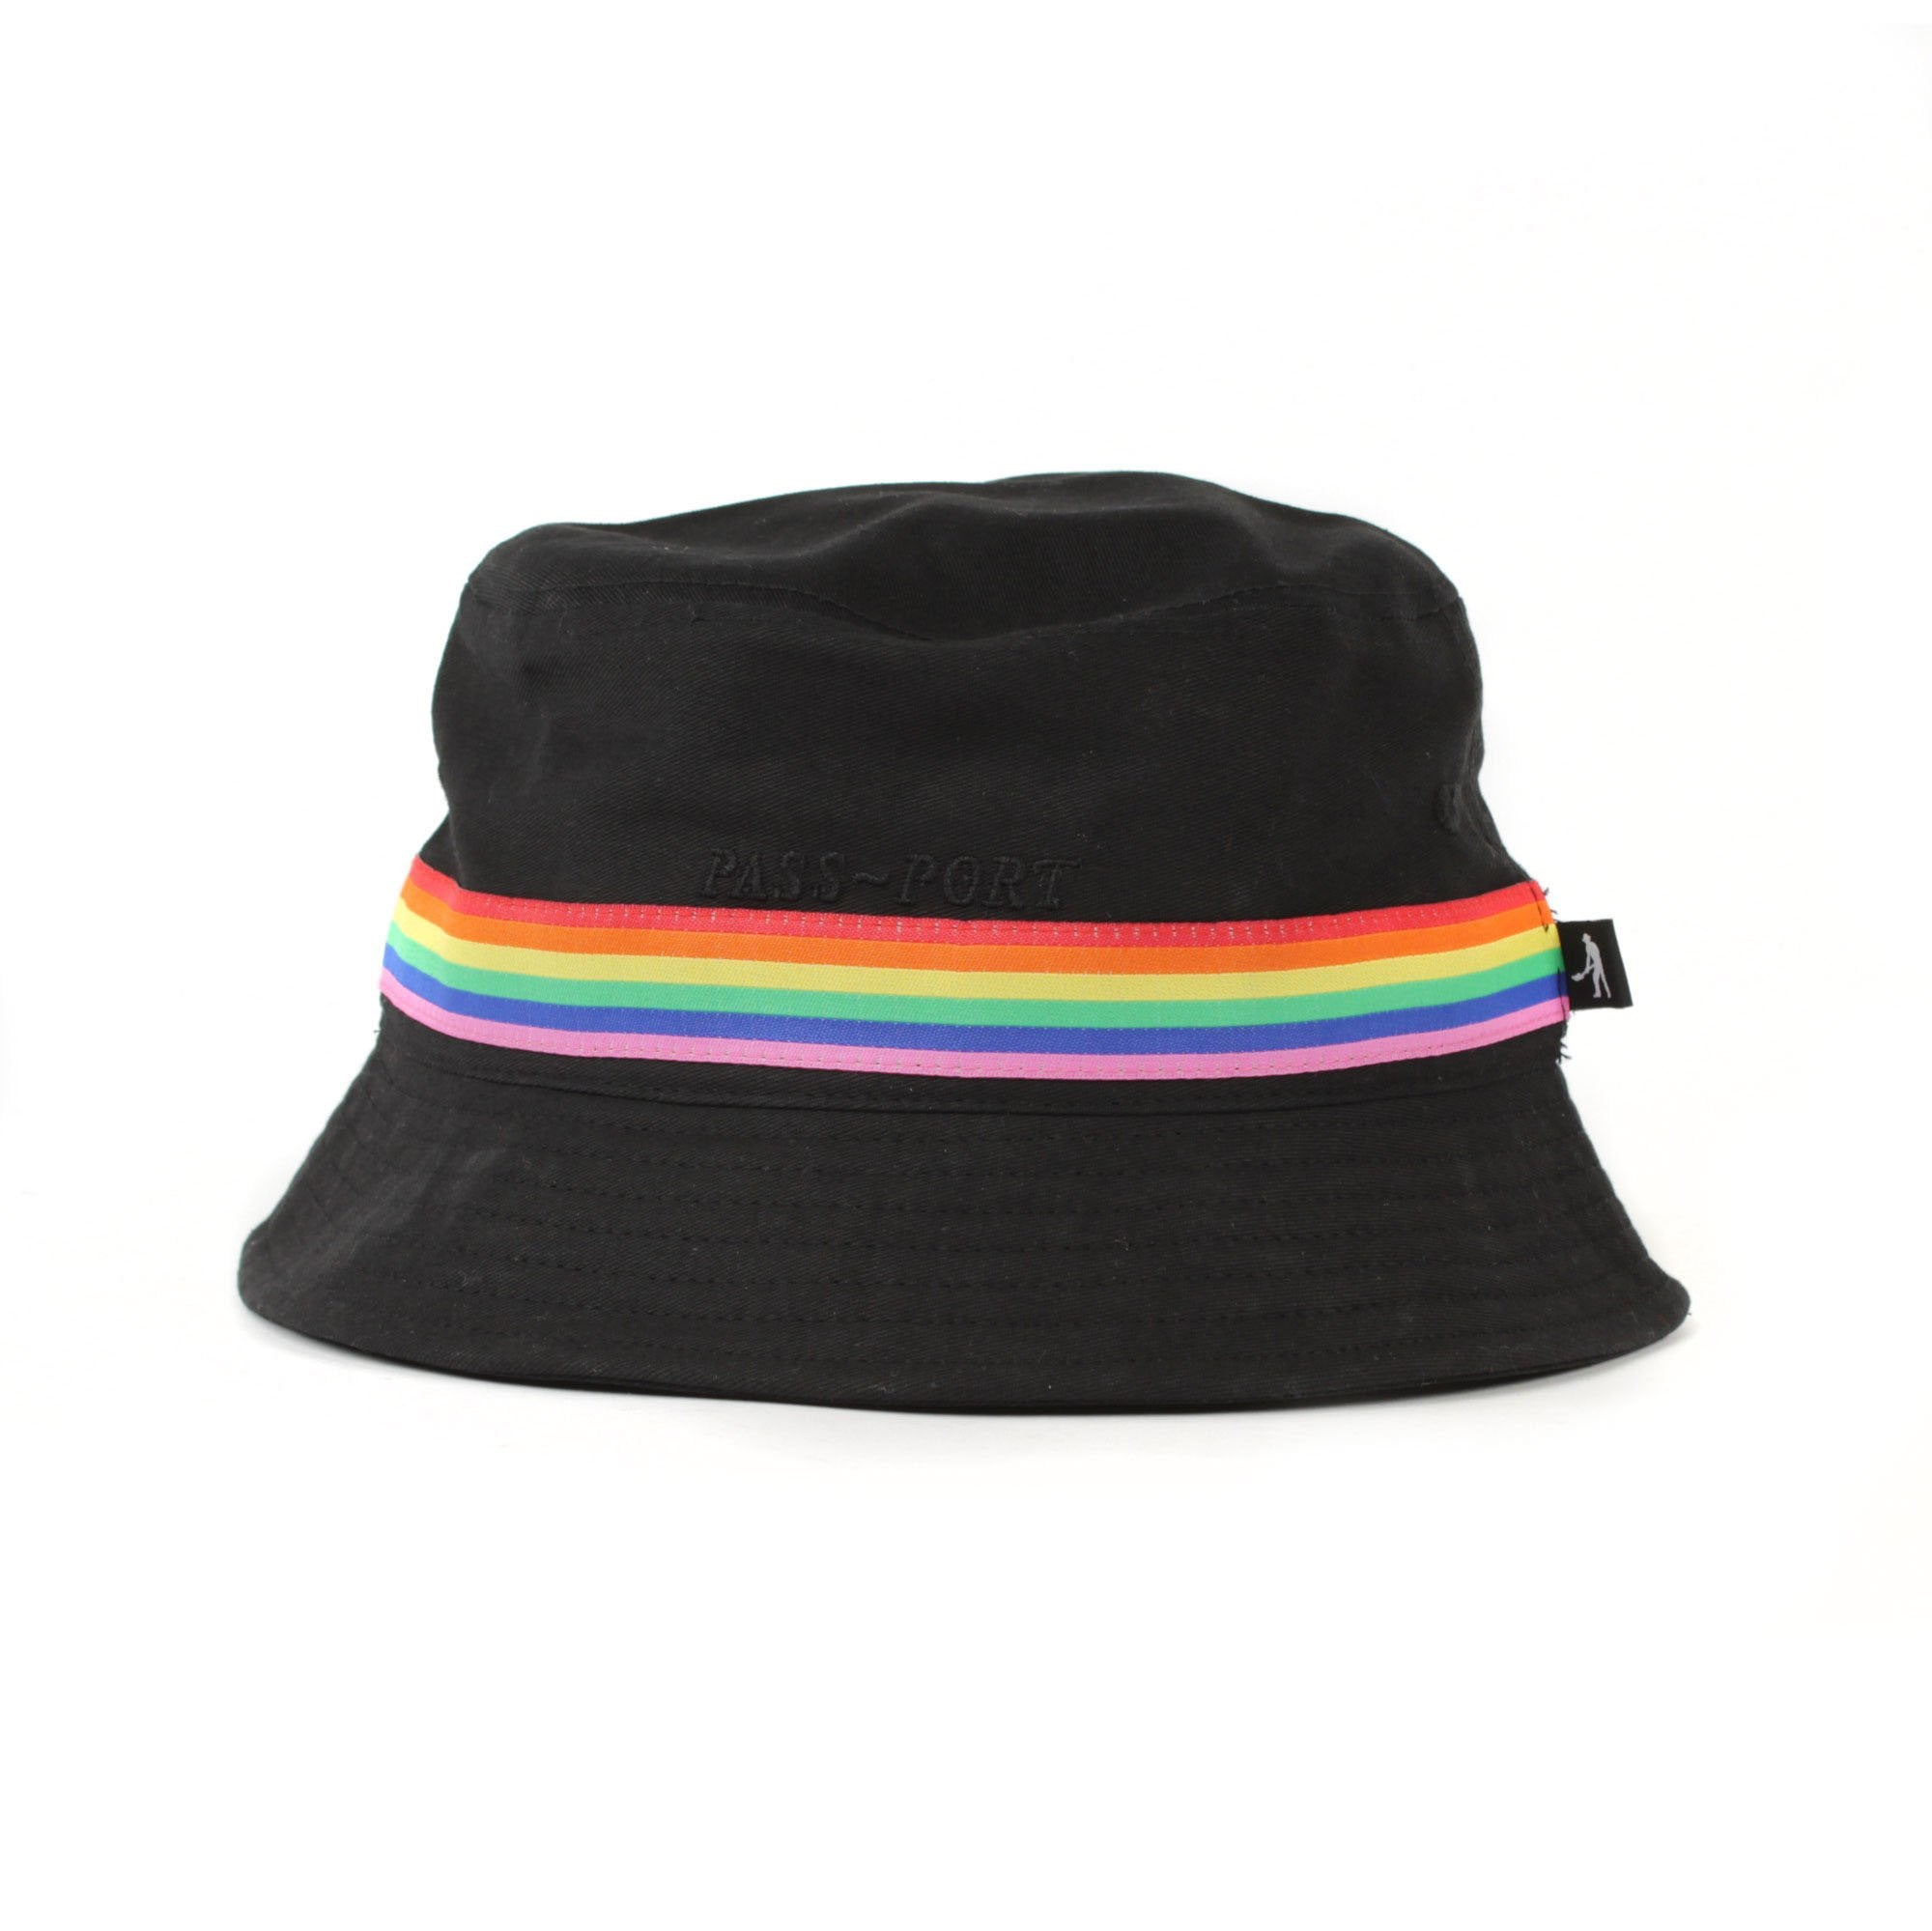 Passport MG Bucket Hat Product Photo #1